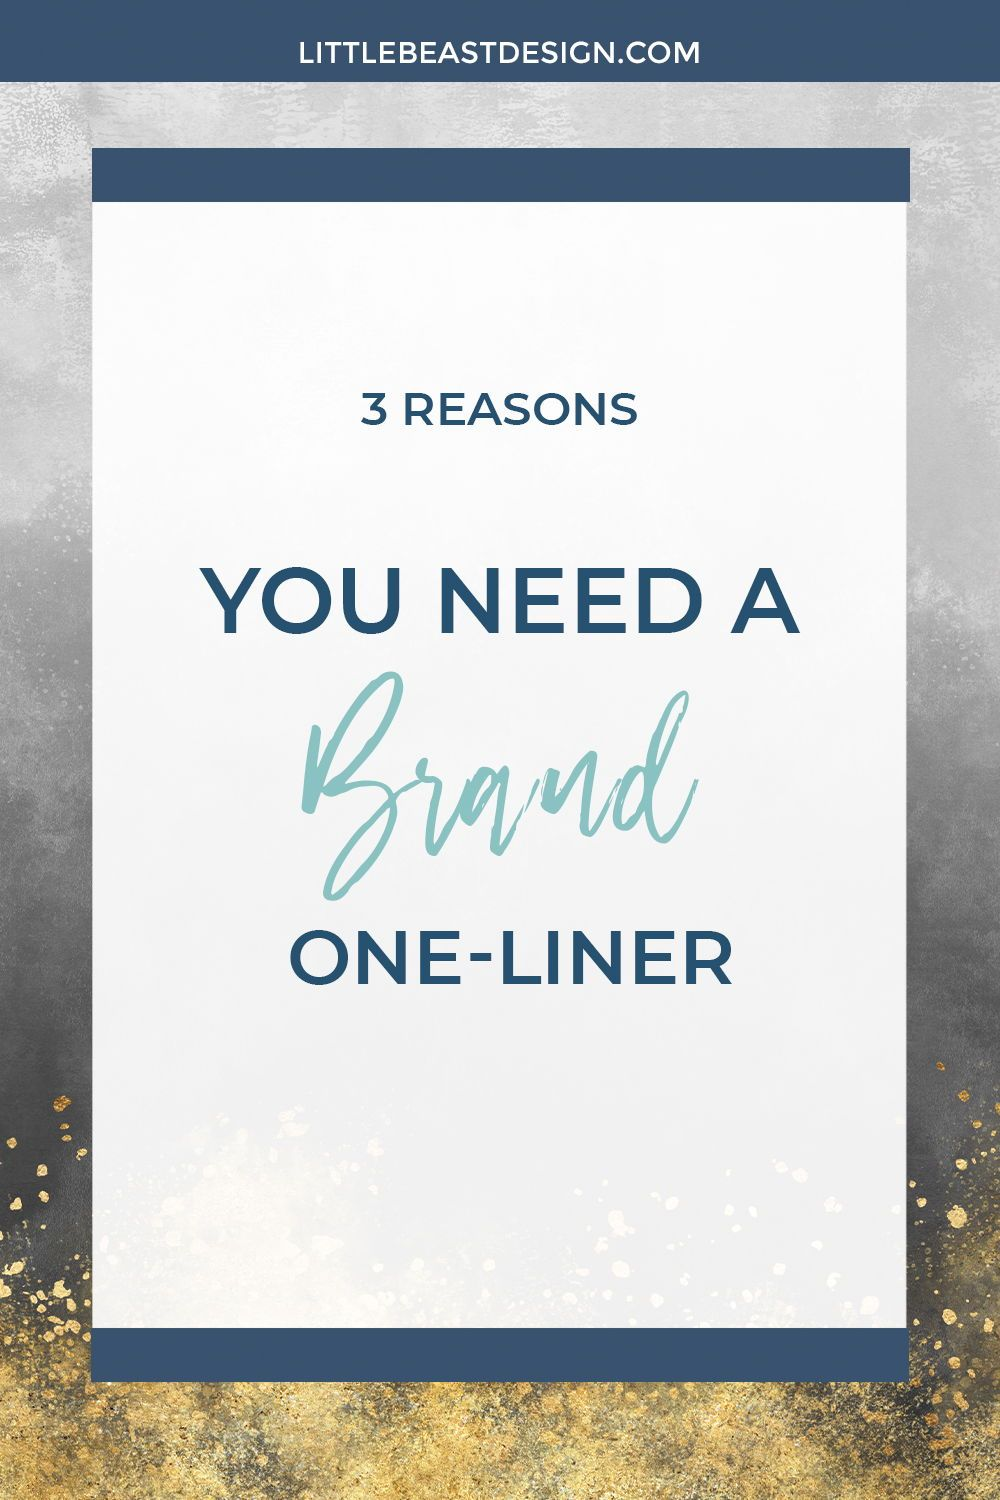 Are you a creative entrepreneur looking for branding tips and inspiration? Click through to find out 3 reasons why you need a brand one-liner! #brandingtips #onlinebusiness #creativeentrepreneur #branding